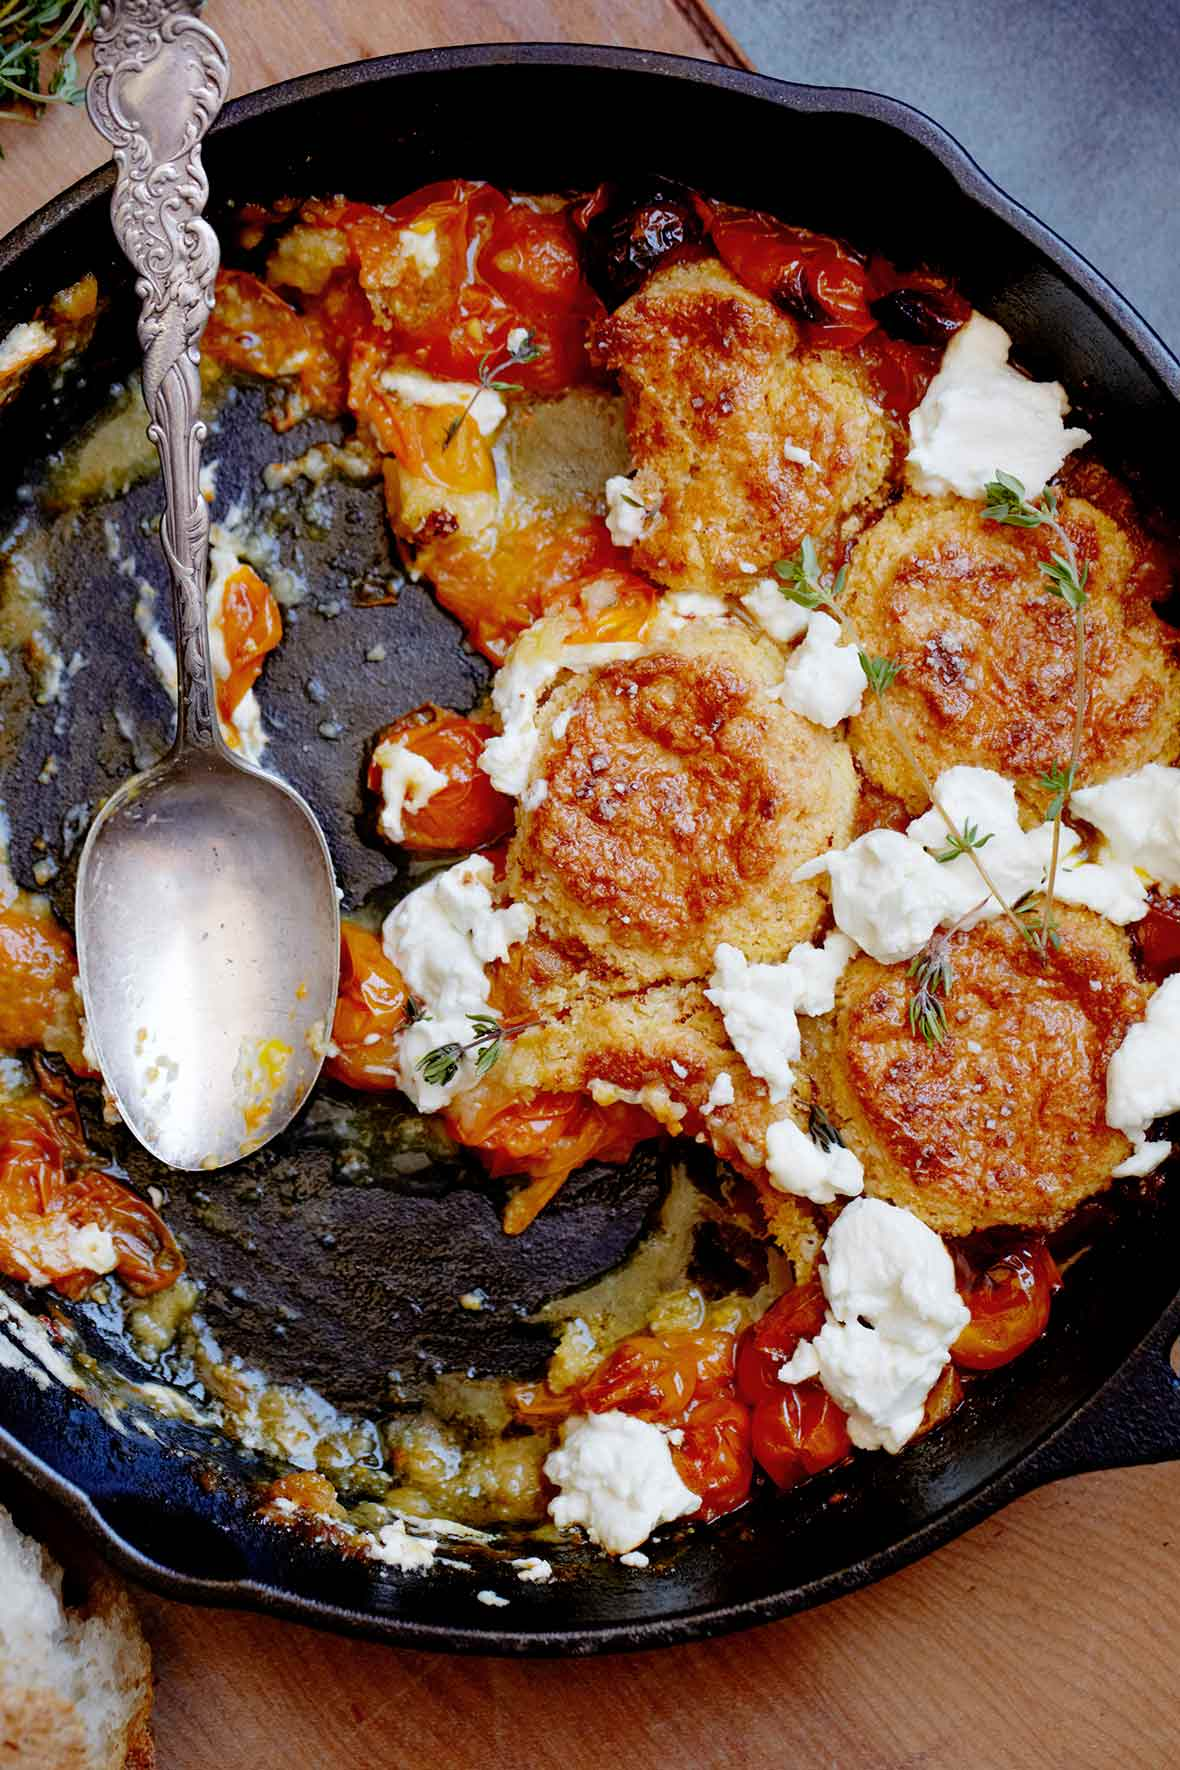 Tomato and Goat Cheese Cobbler